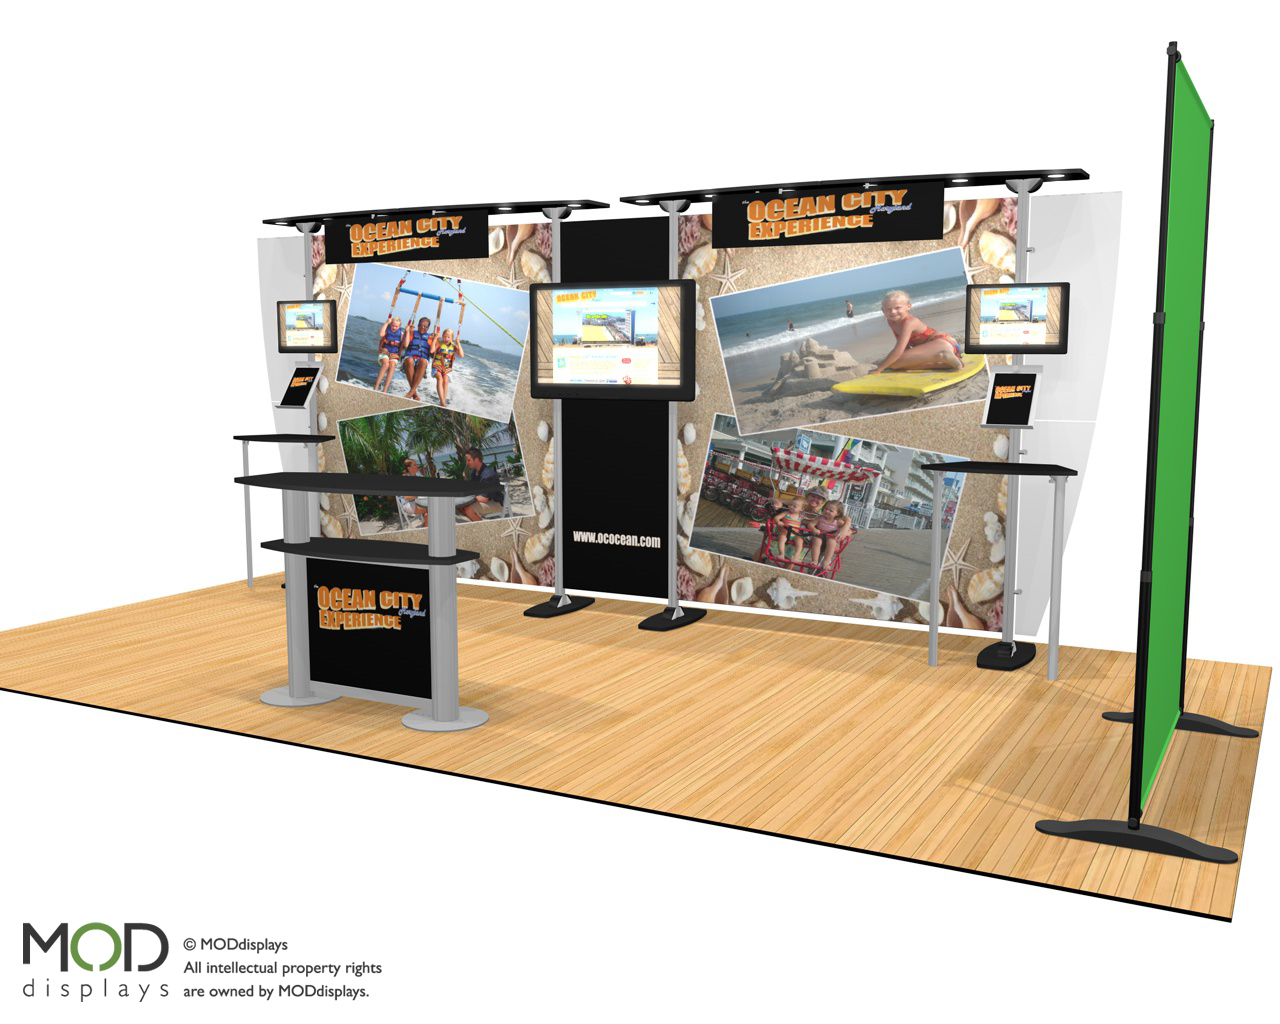 """Booth will provide """"OC Experience"""" at regional trade, travel shows"""